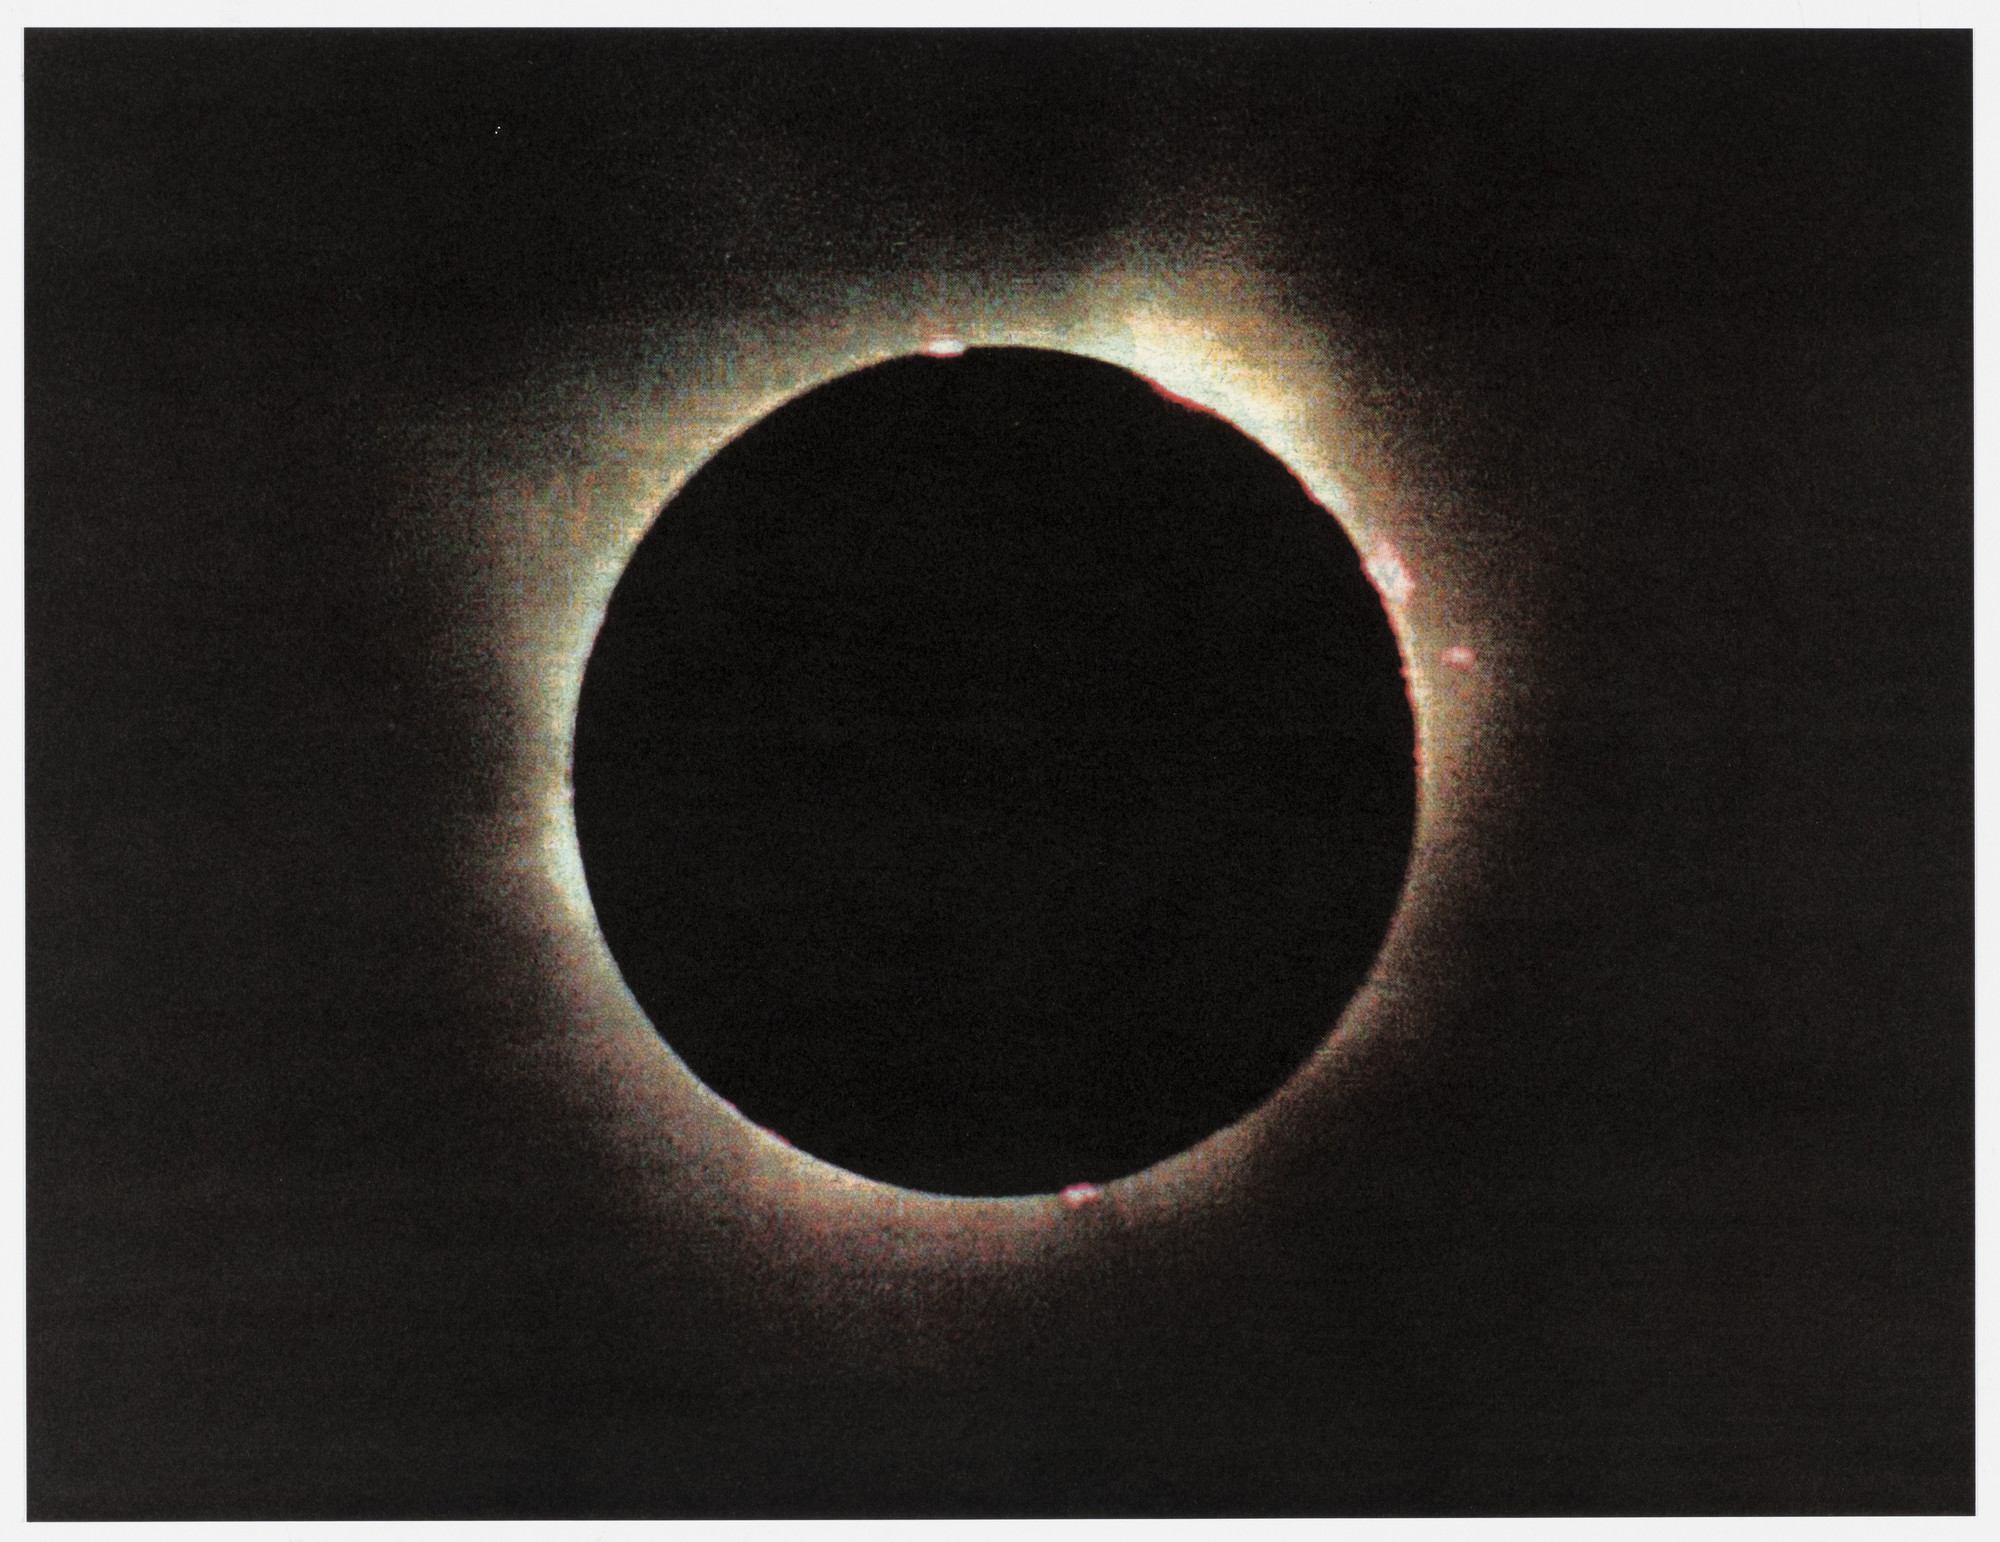 Douglas Gordon. Sun from August 12, 1999. 2011